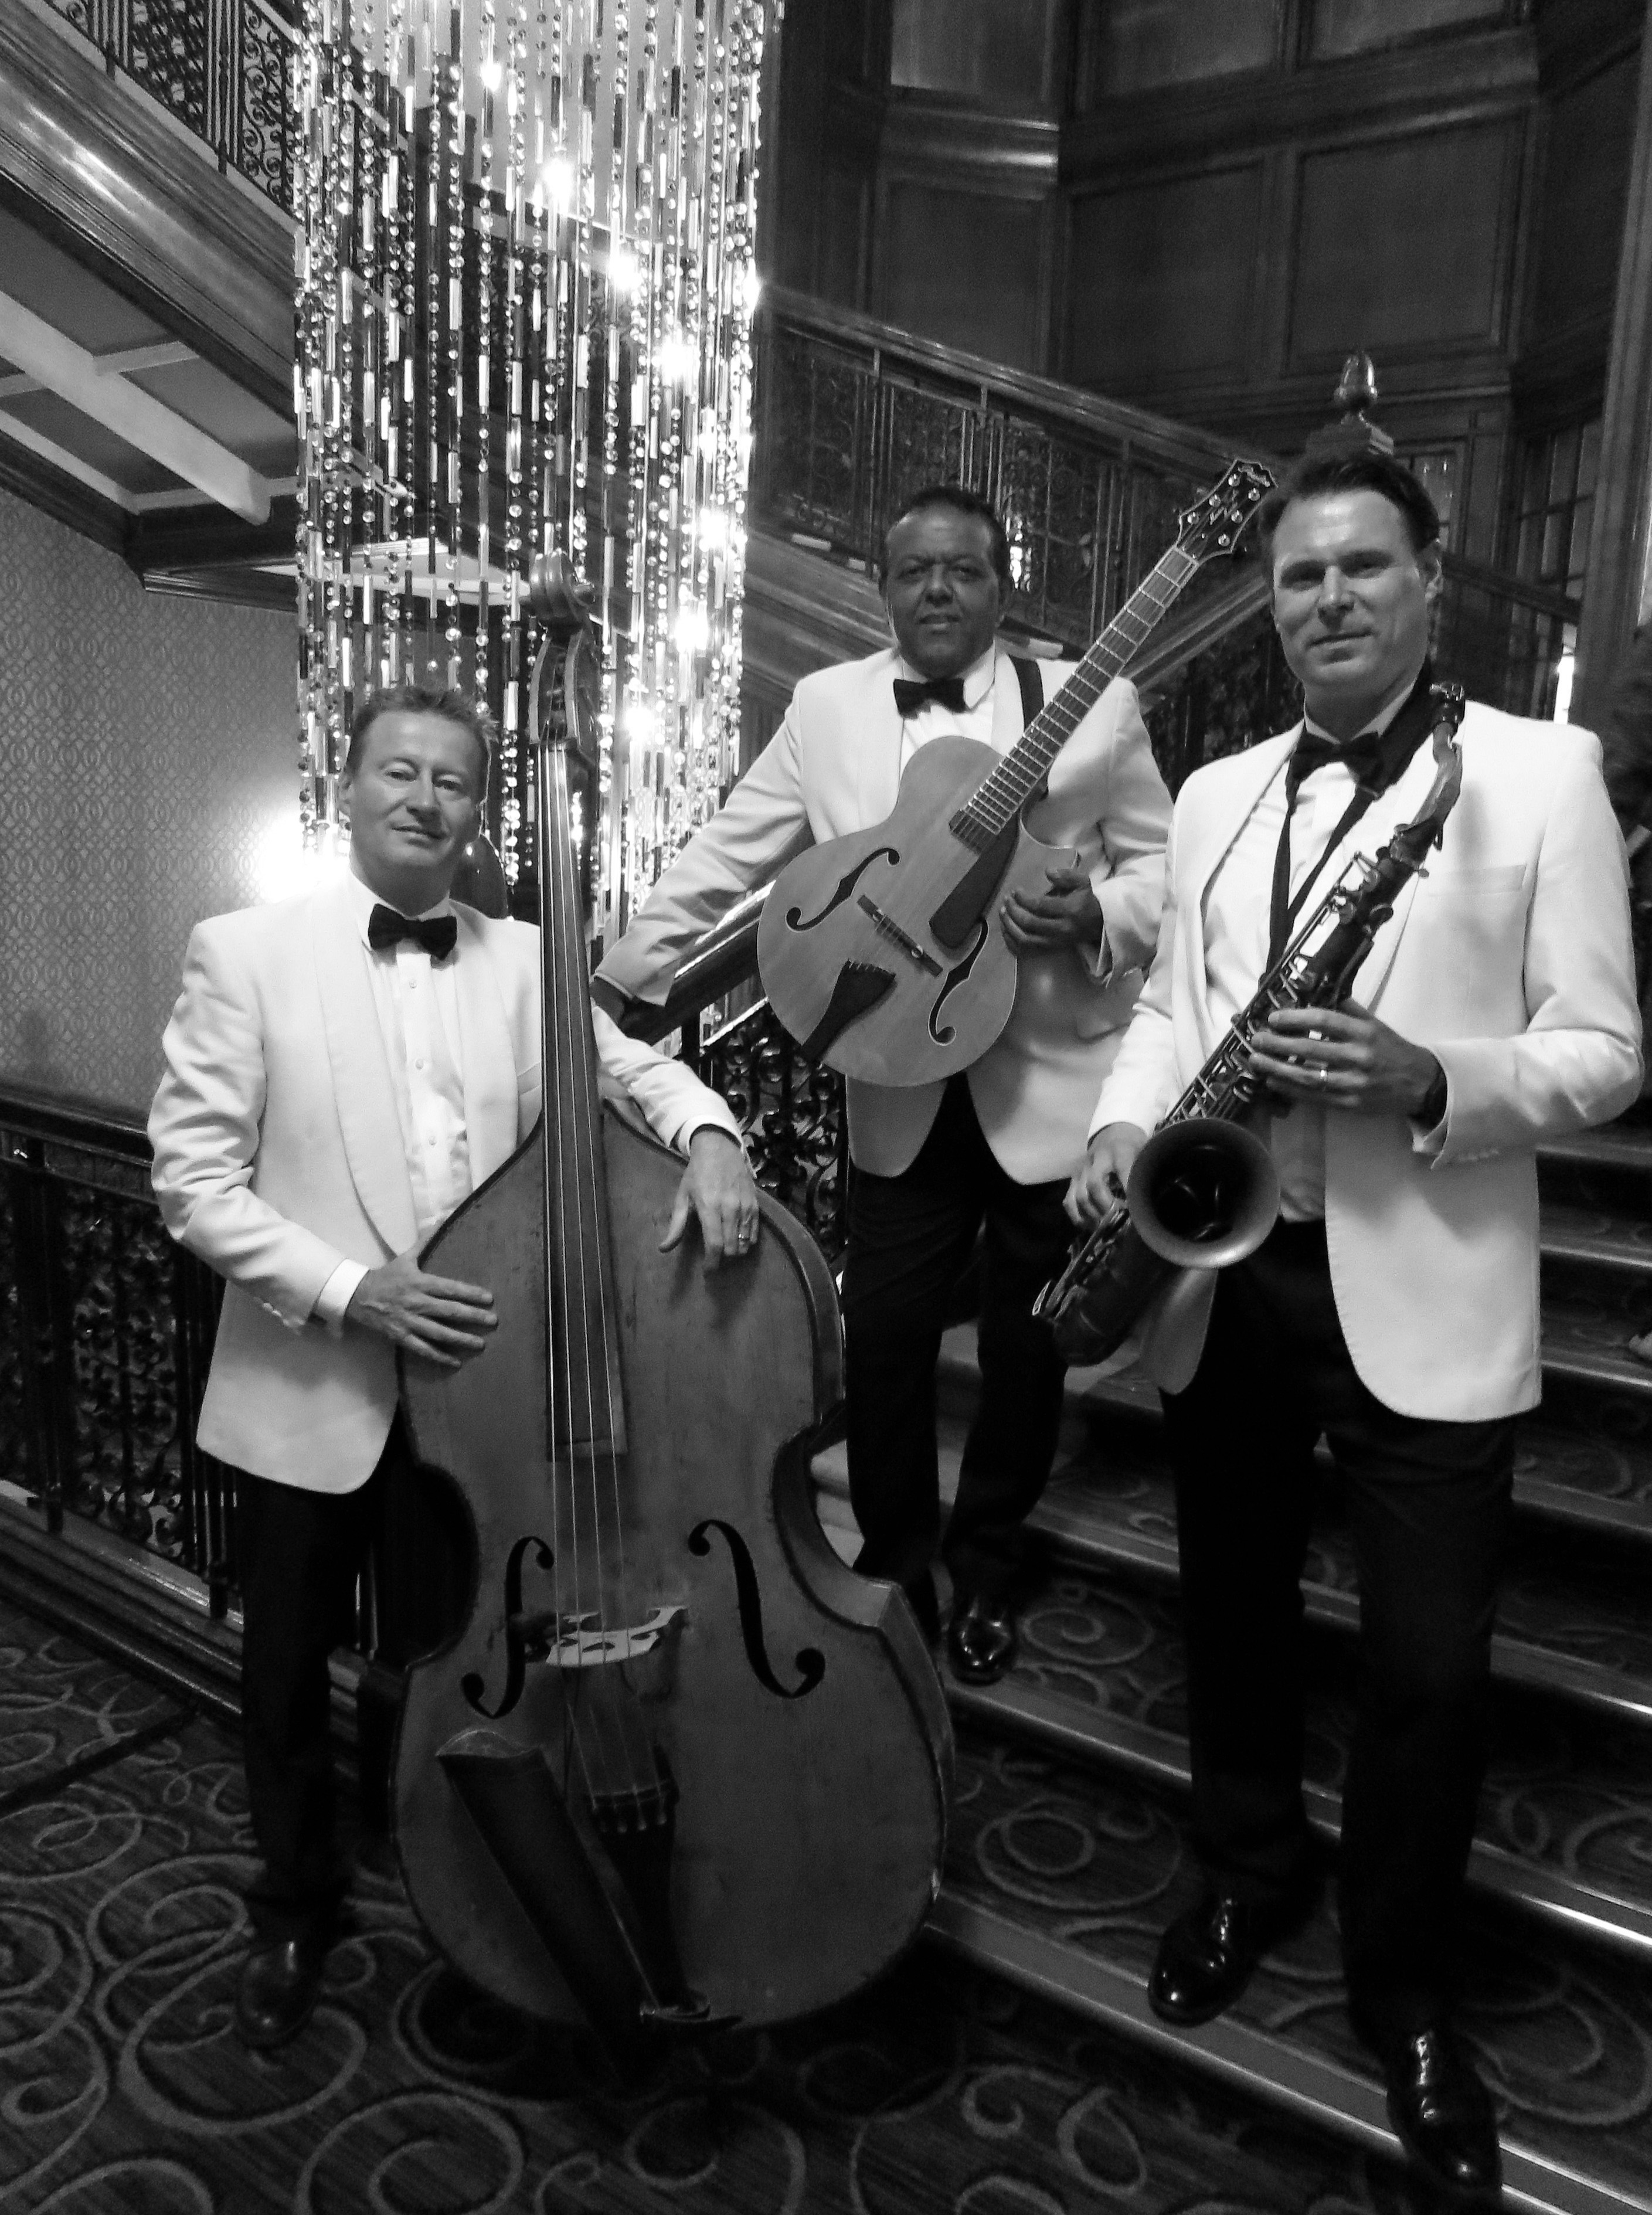 peaky blinders band ideas in Scotland the Ritz Trio band